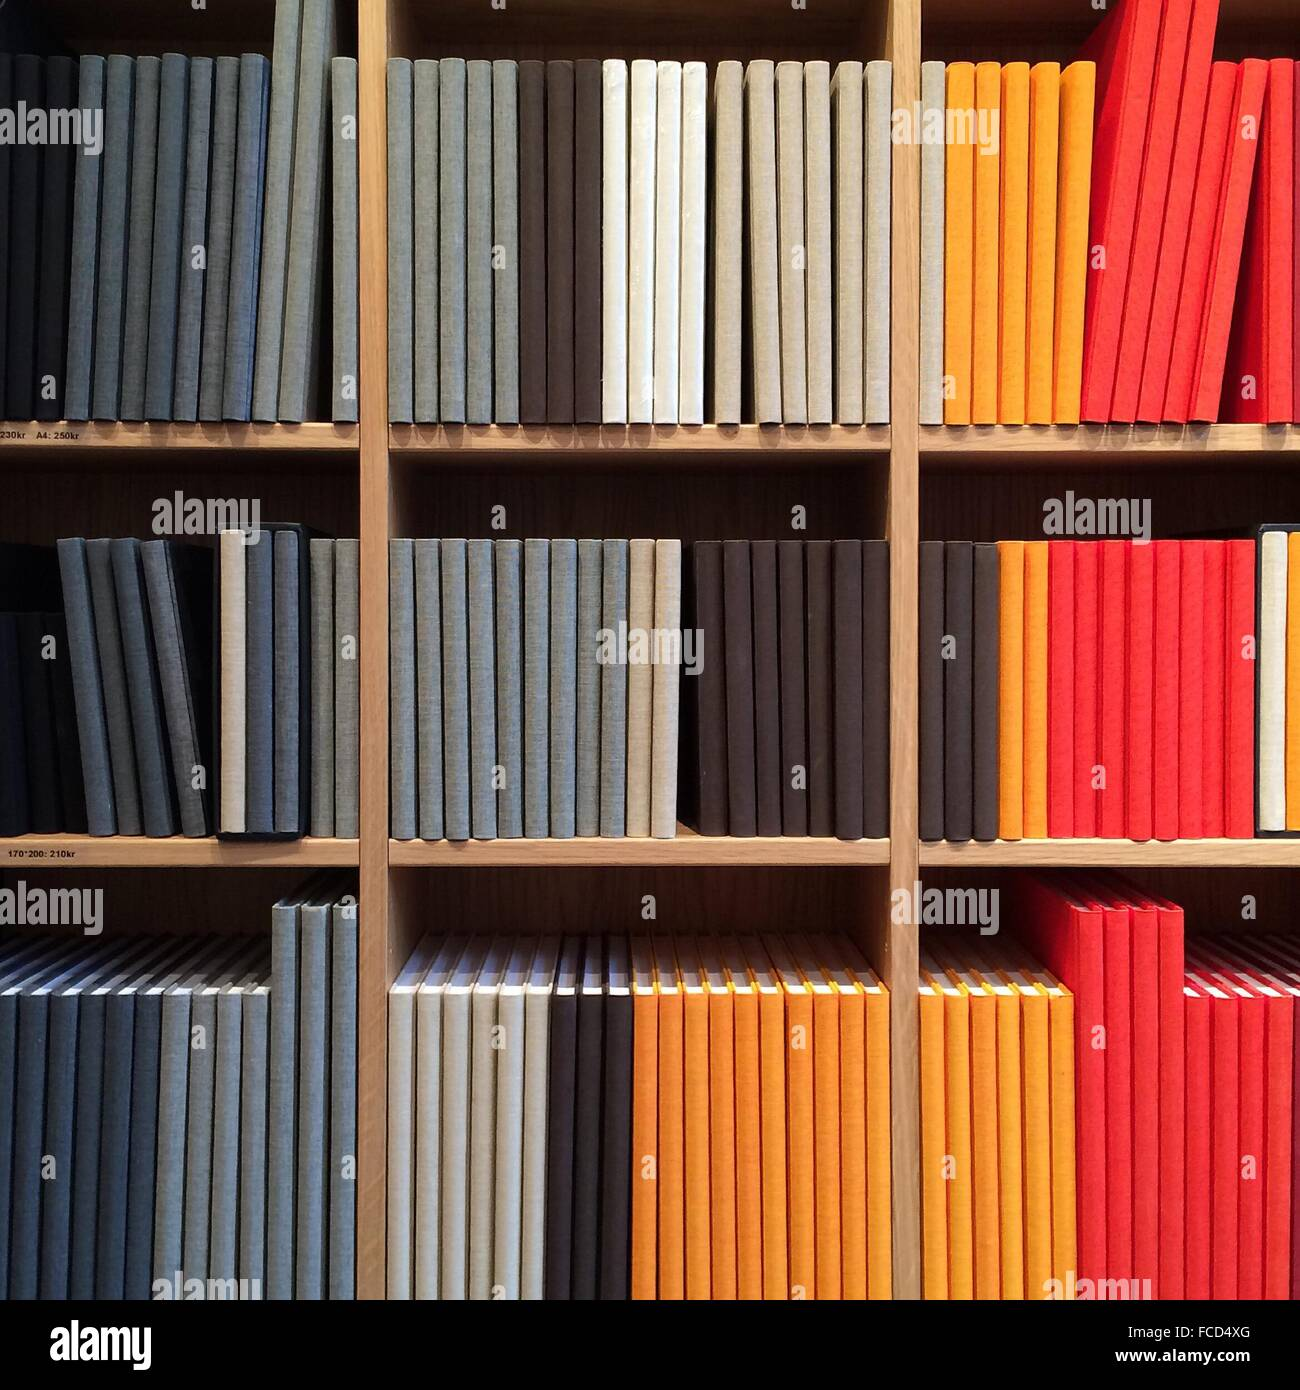 Full Frame View Of Bookshelf - Stock Image